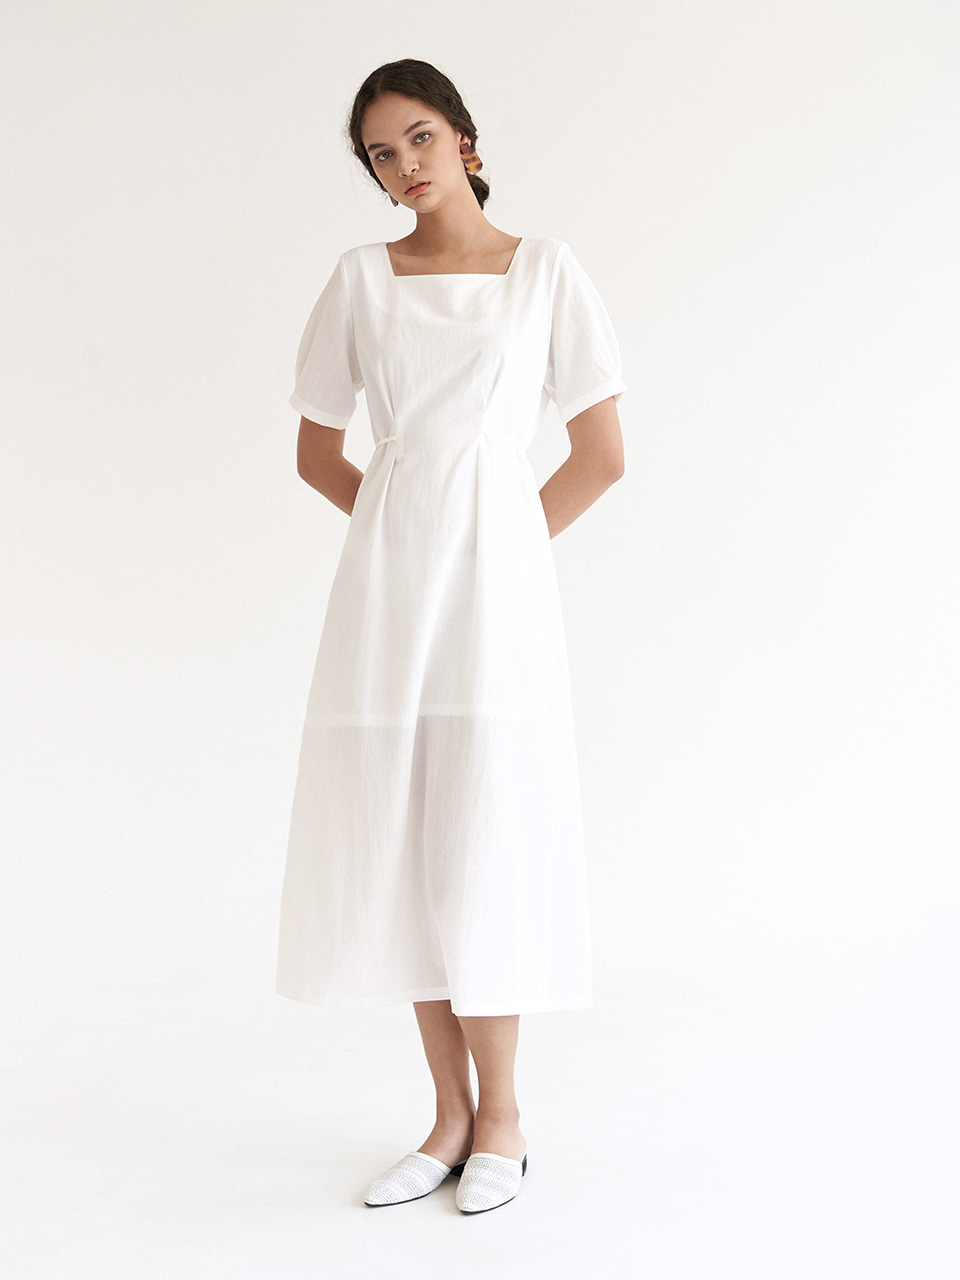 Sqaure Tuck Dress - White